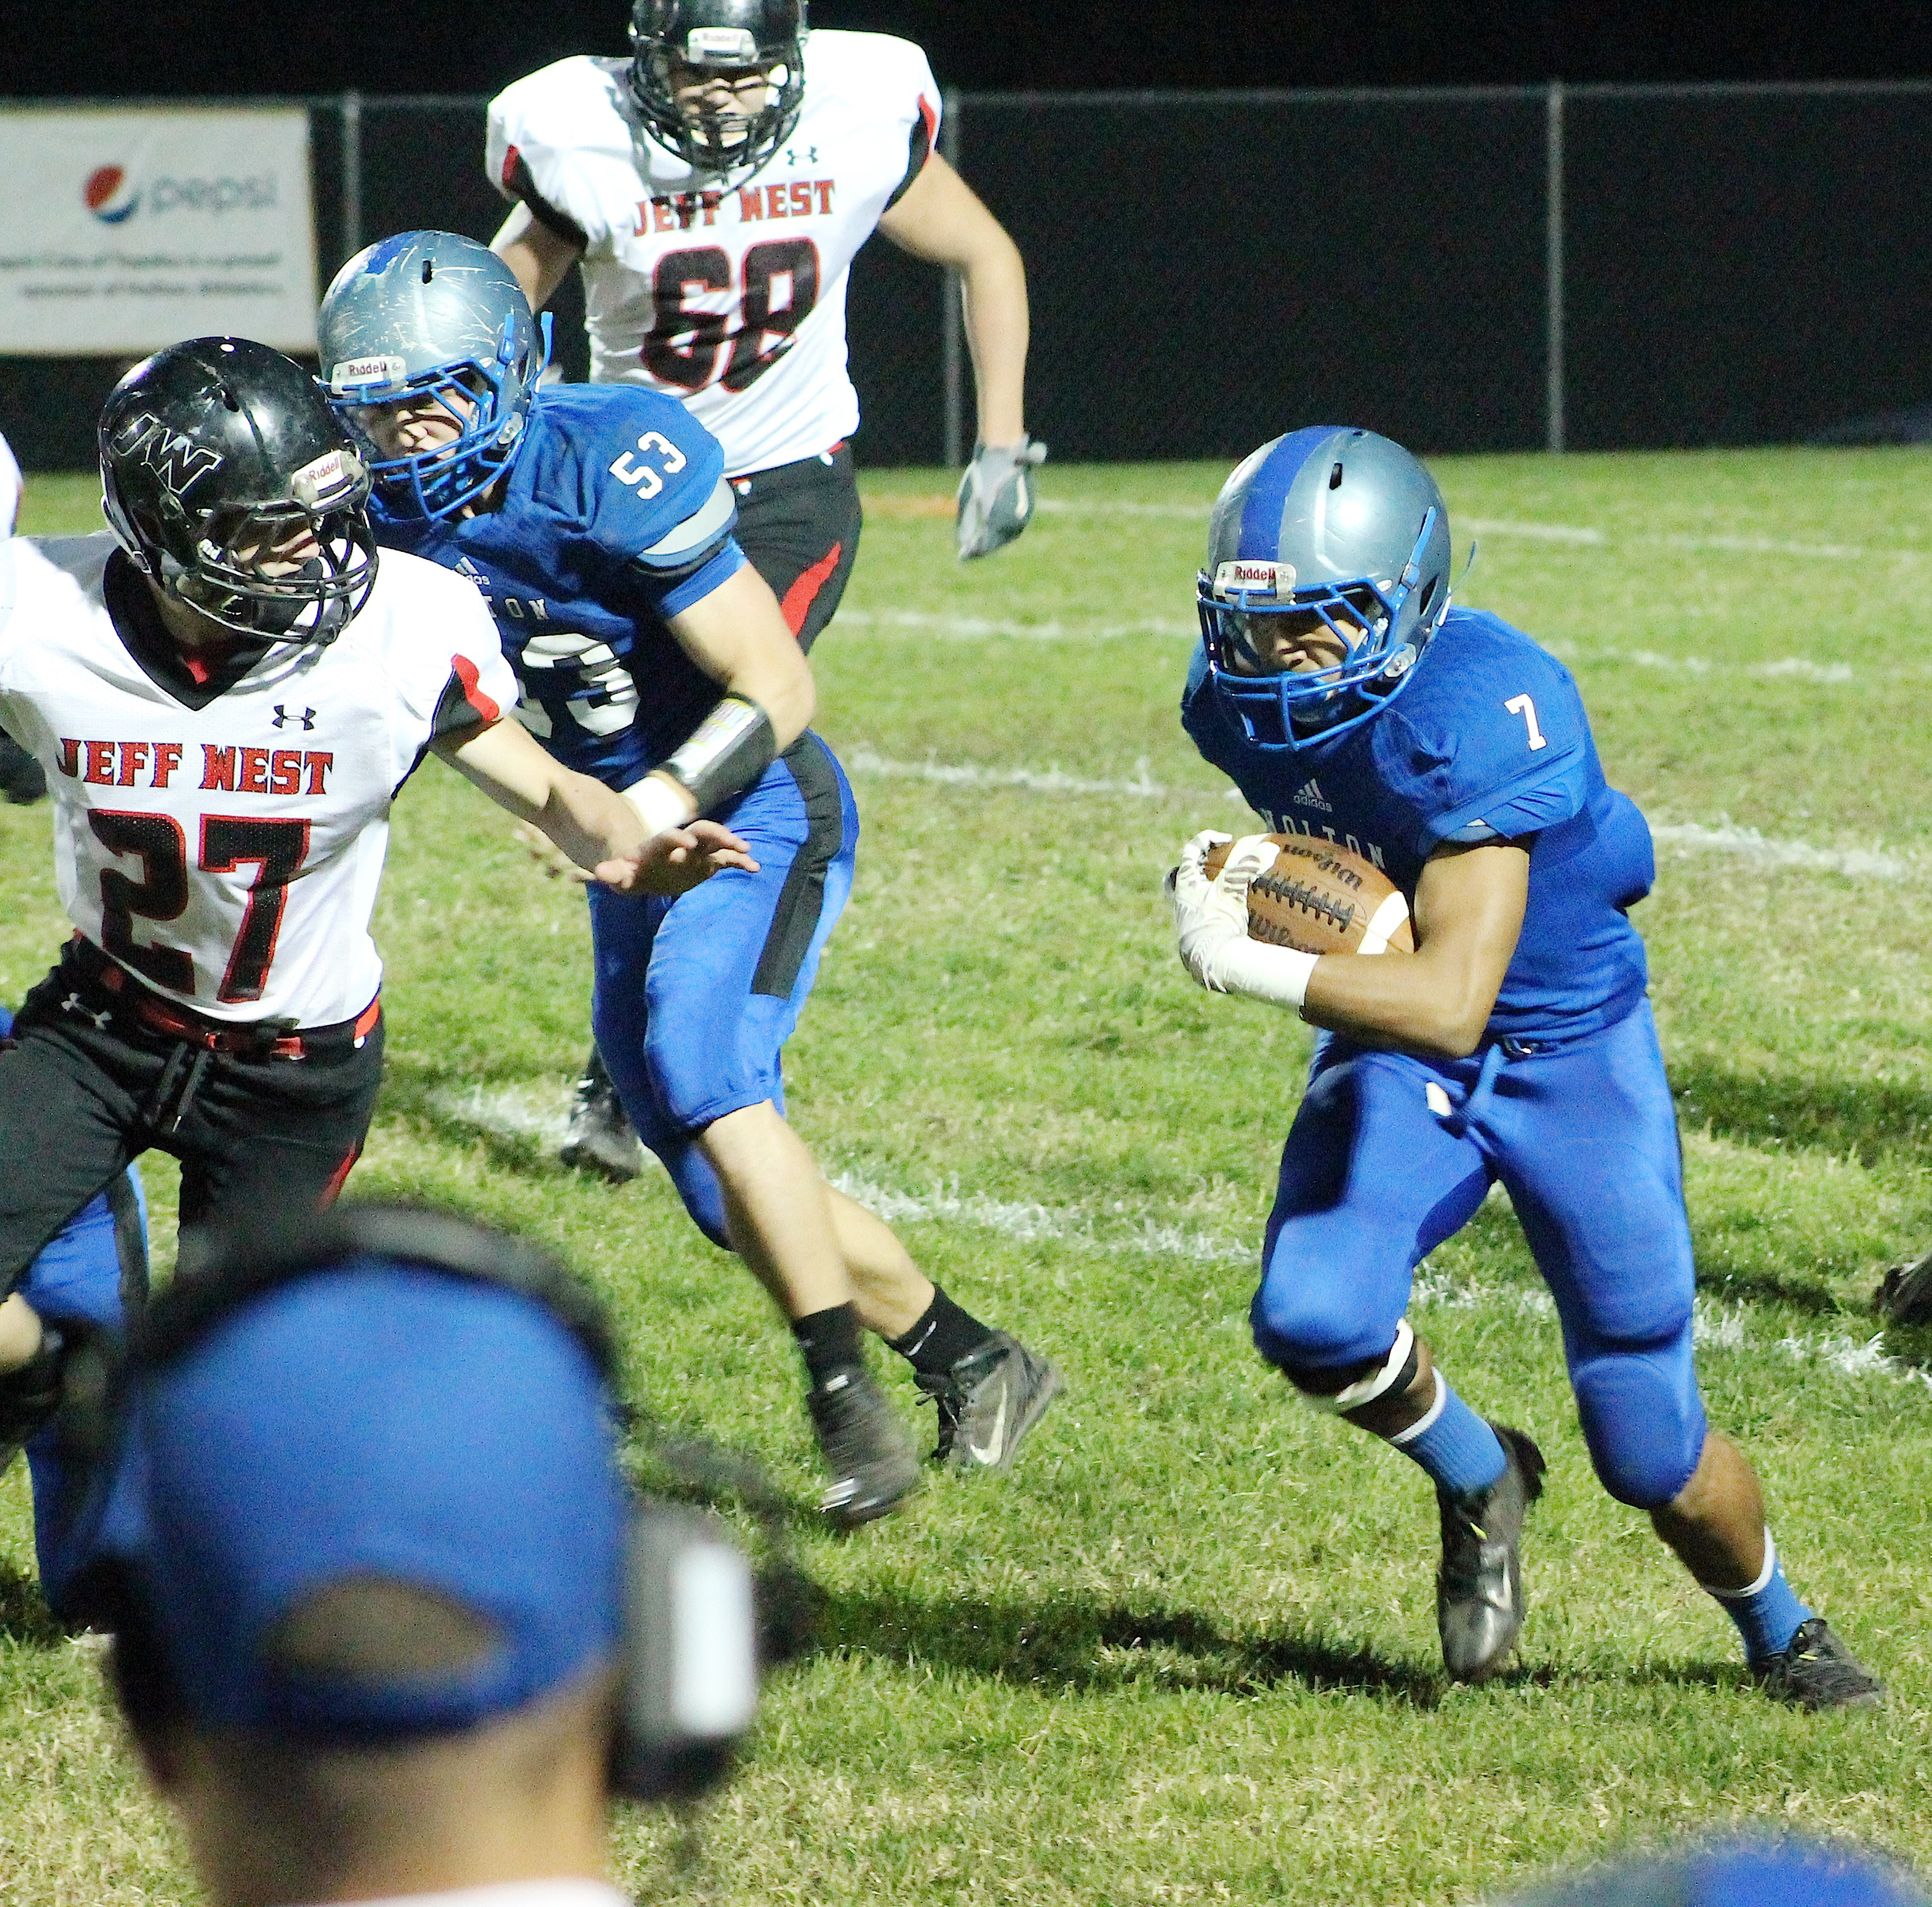 Wildcat Luis Butto (right) tries to break free for a long run early in the district contest against Jeff West.